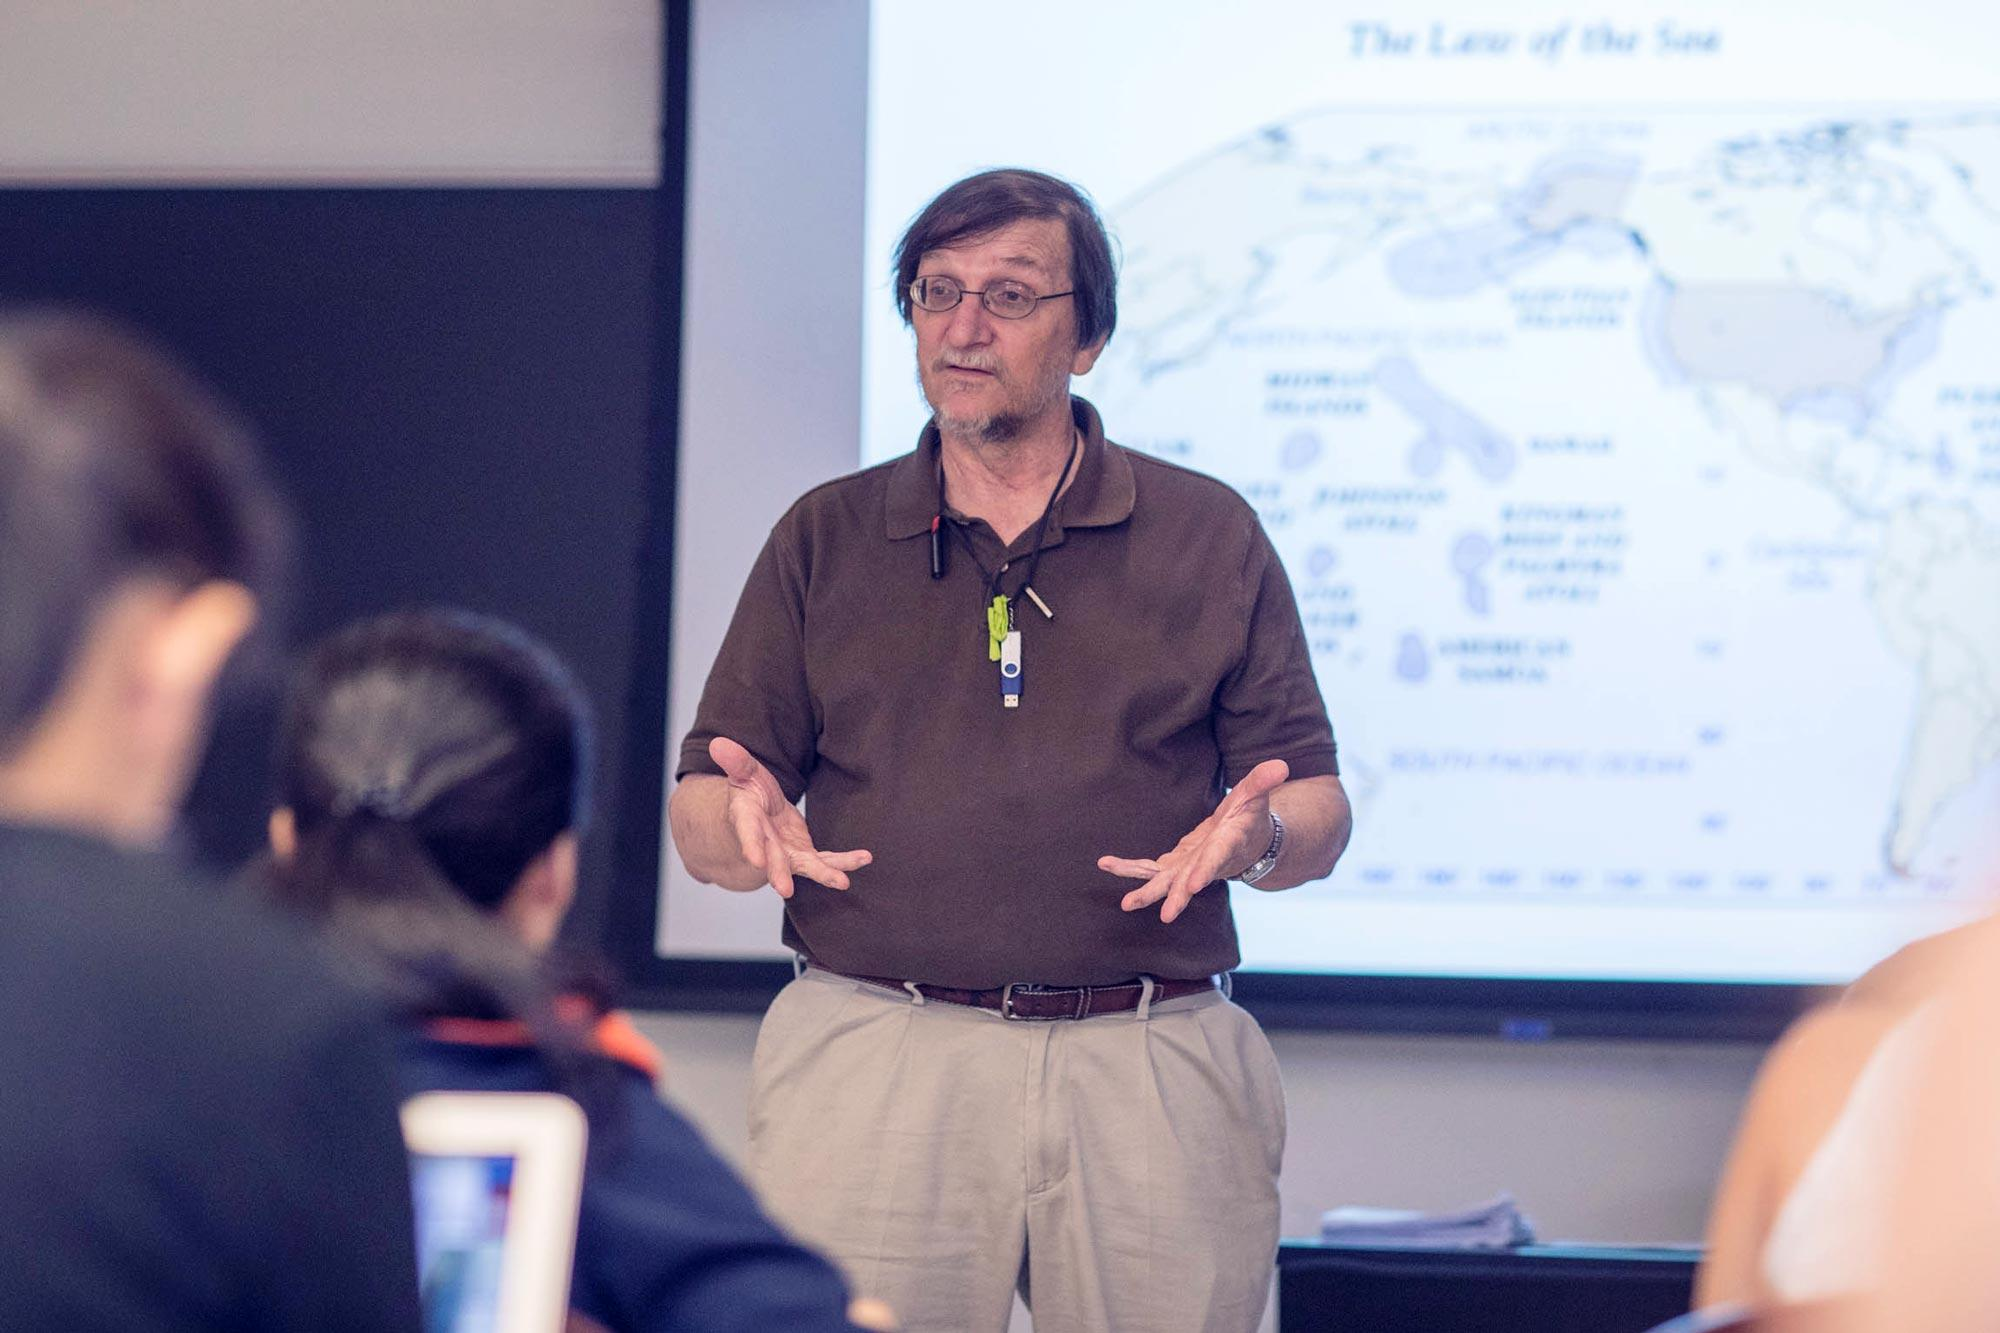 Environmental scientist Stephen Macko recently taught an introductory oceanography class to 16 high school students through the UVA Advance program.